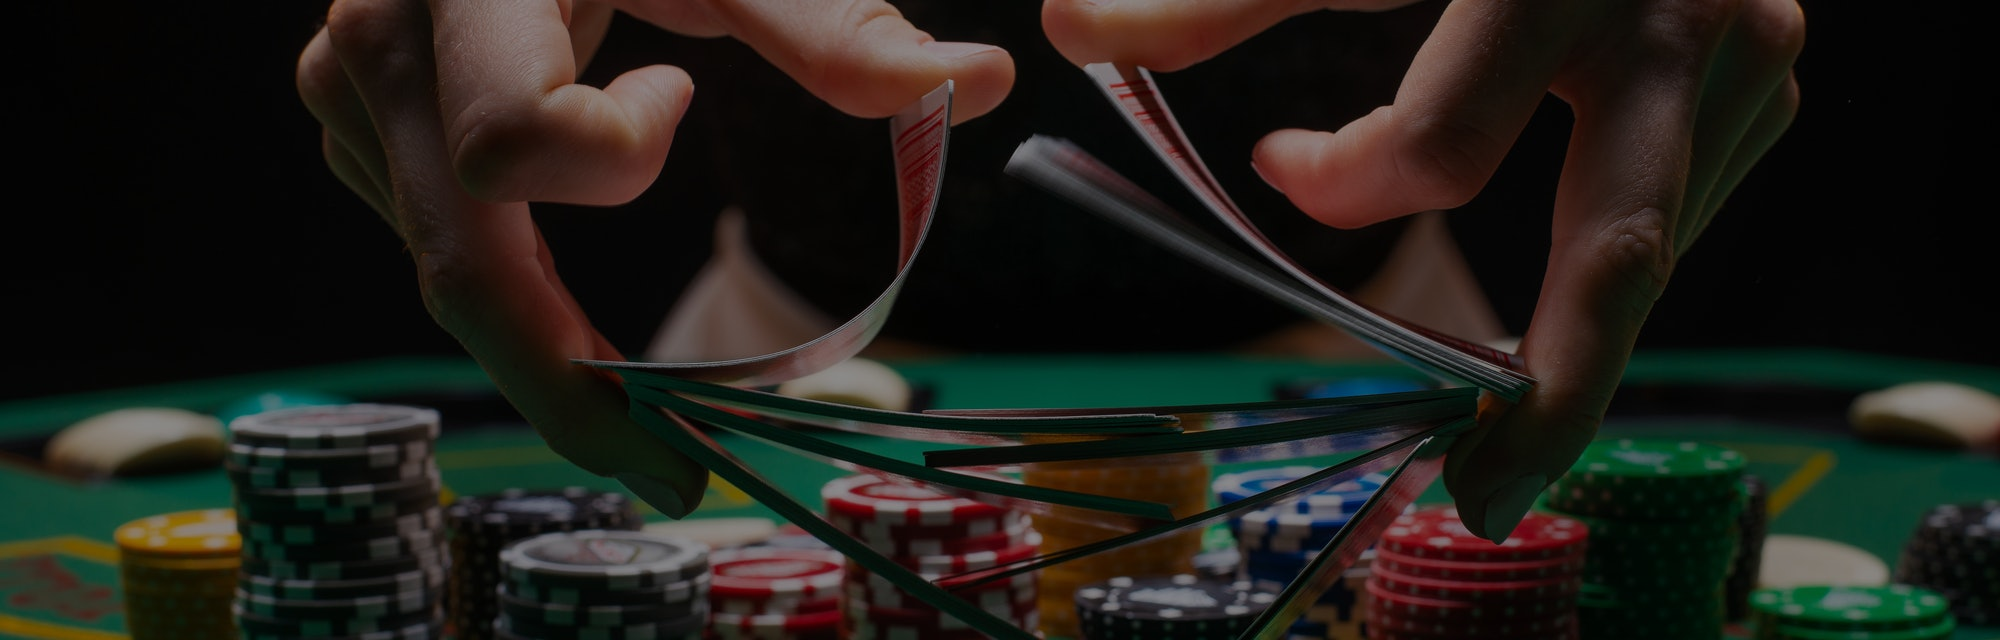 Girl dealer or croupier shuffles poker cards in a casino on the background of a table, chips,. Concept of poker game, game business